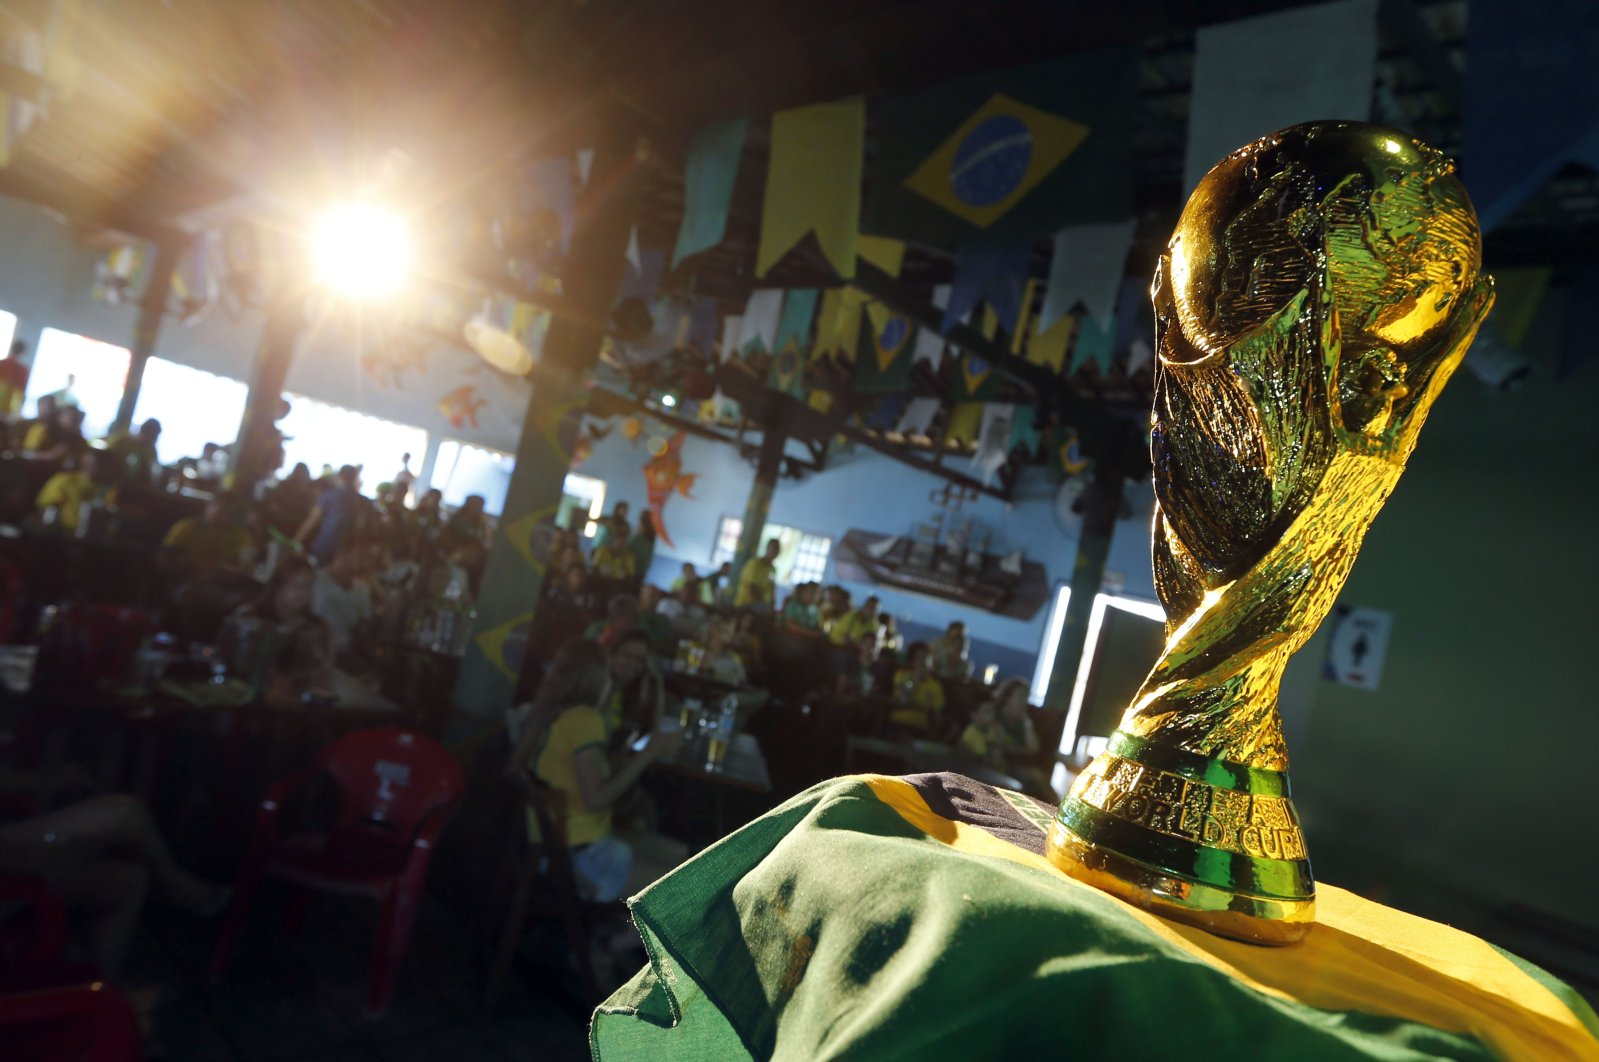 Brazilians watch the opening match of the FIFA World Cup between Brazil and Croatia behind a replica of the trophy in Porto Seguro, Brazil, June 12, 2014. (AP Photo)